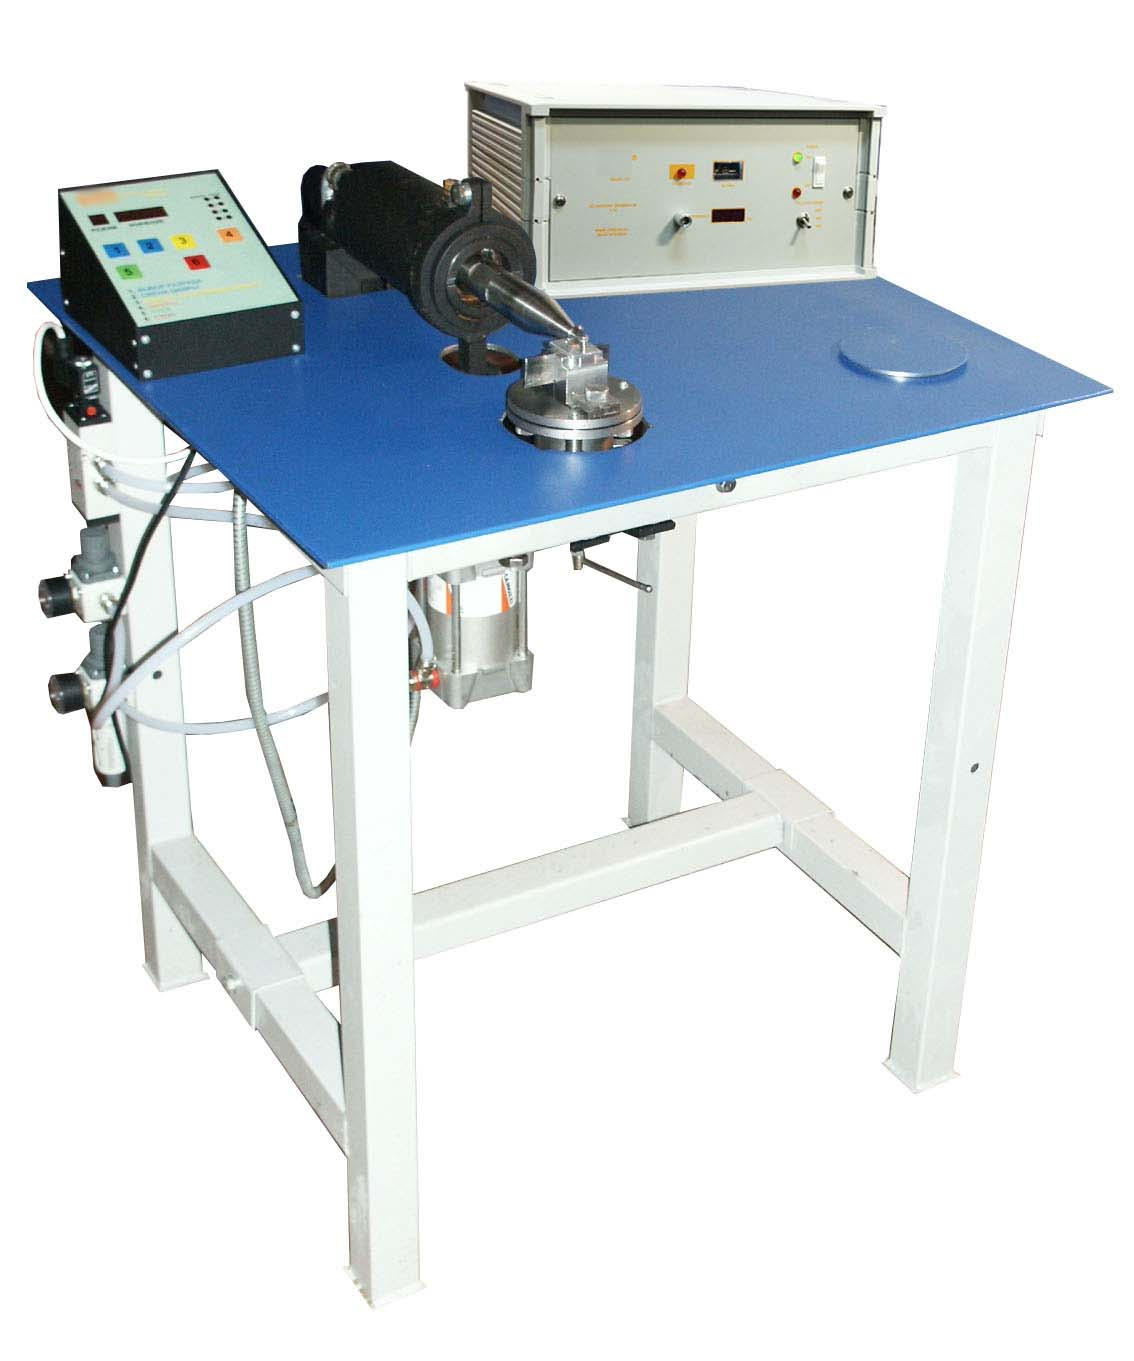 Ultrasonic welding unit IL100-7/5